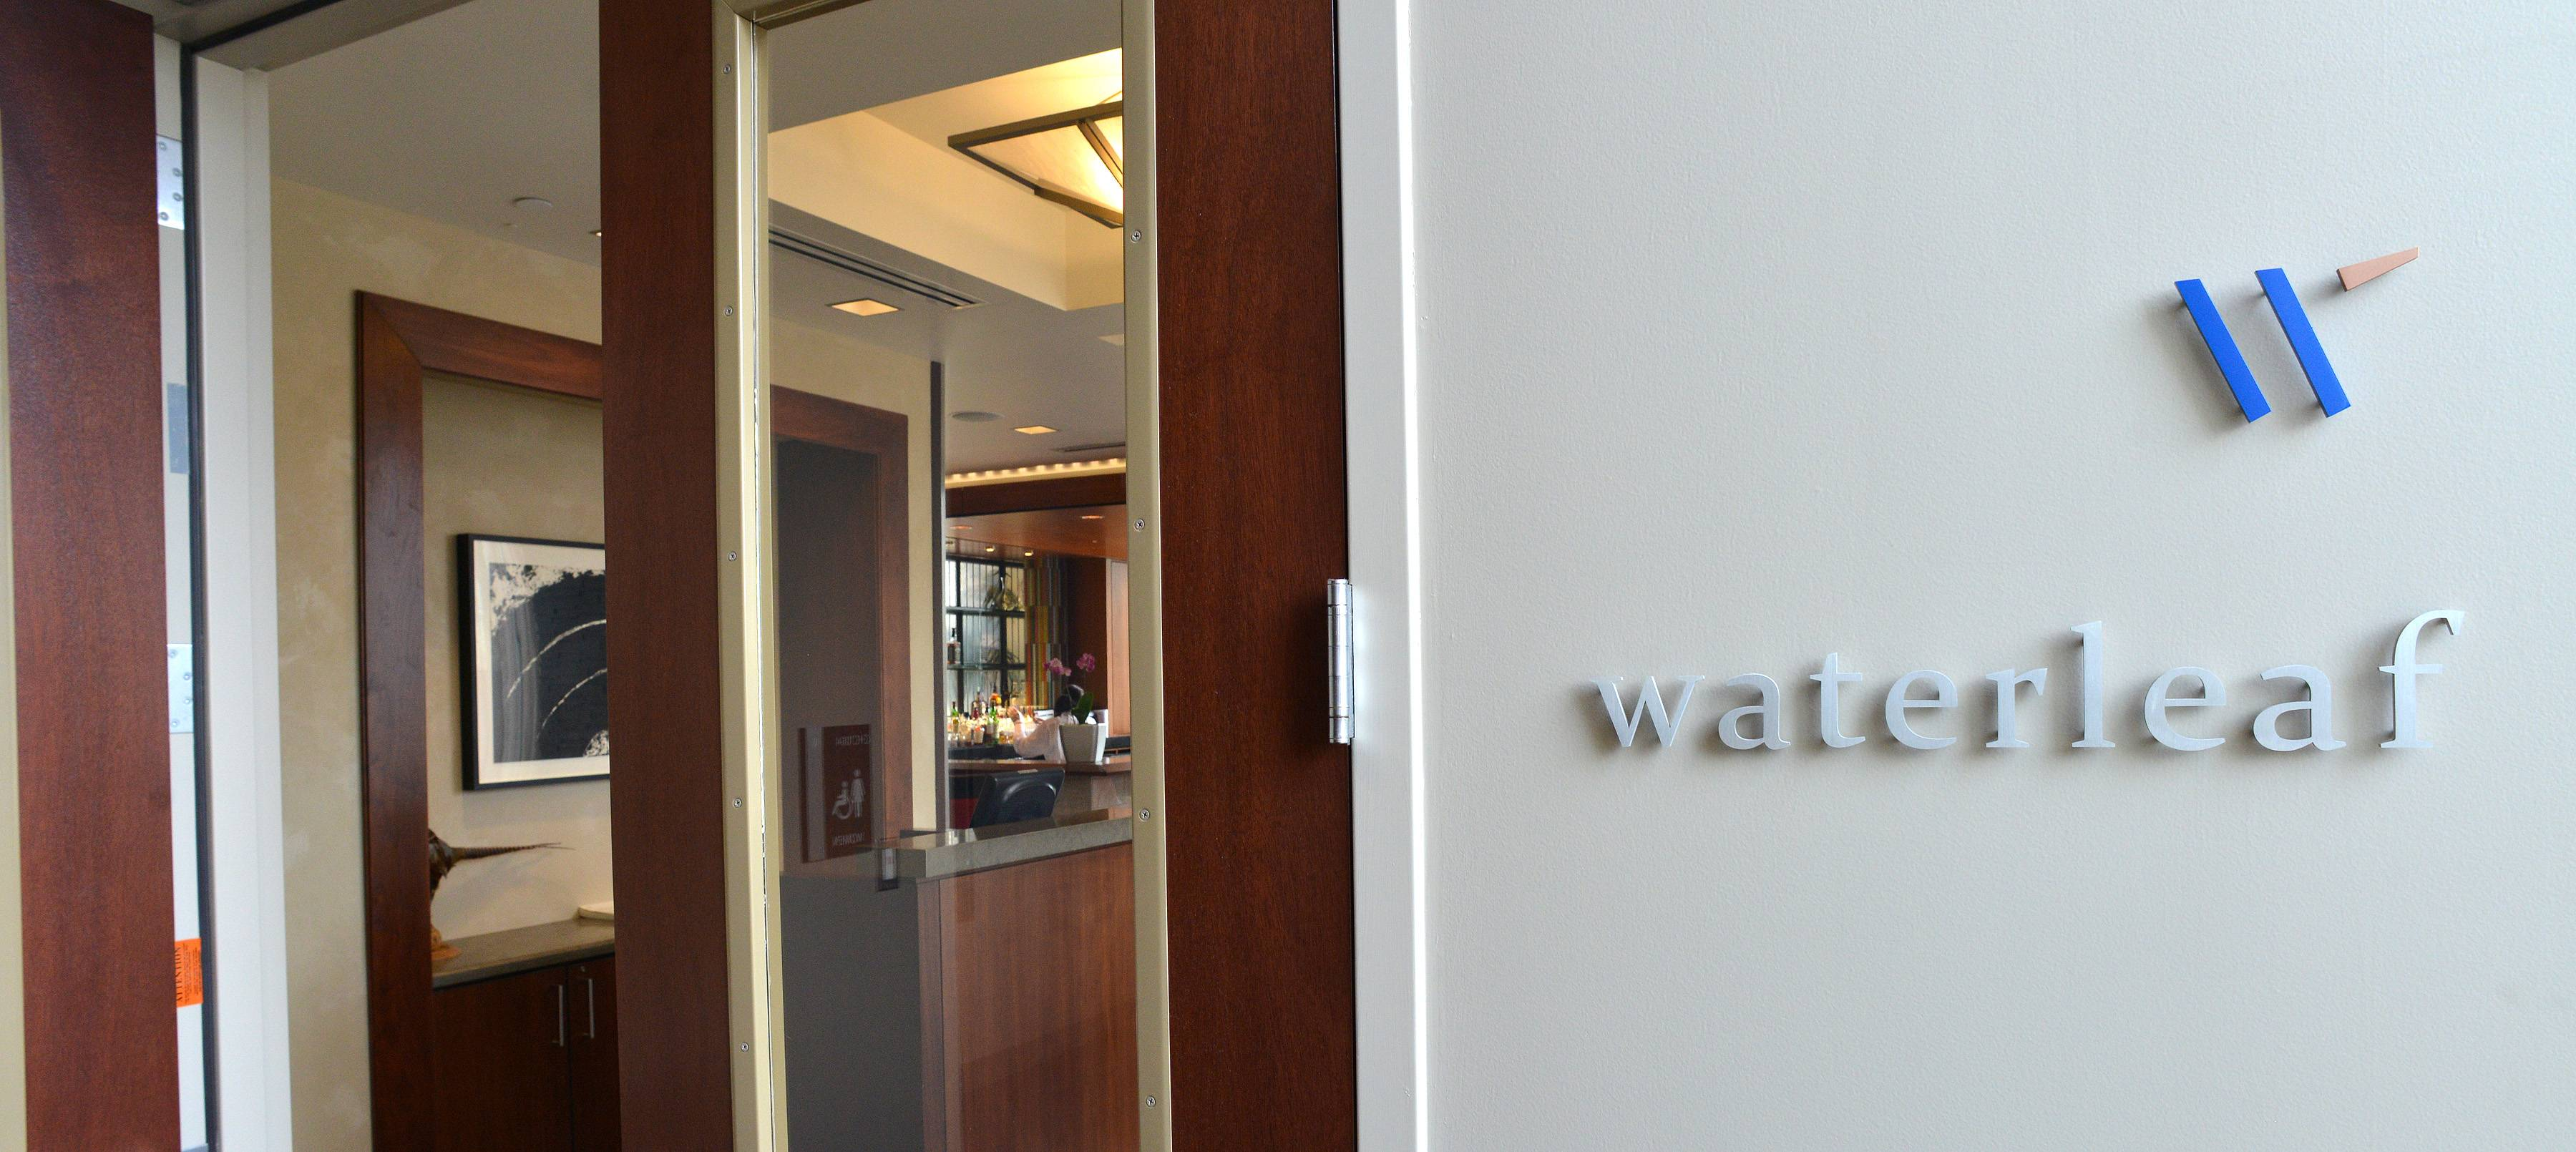 Waterleaf at the College of DuPage in Glen Ellyn is open Wednesday through Sunday.